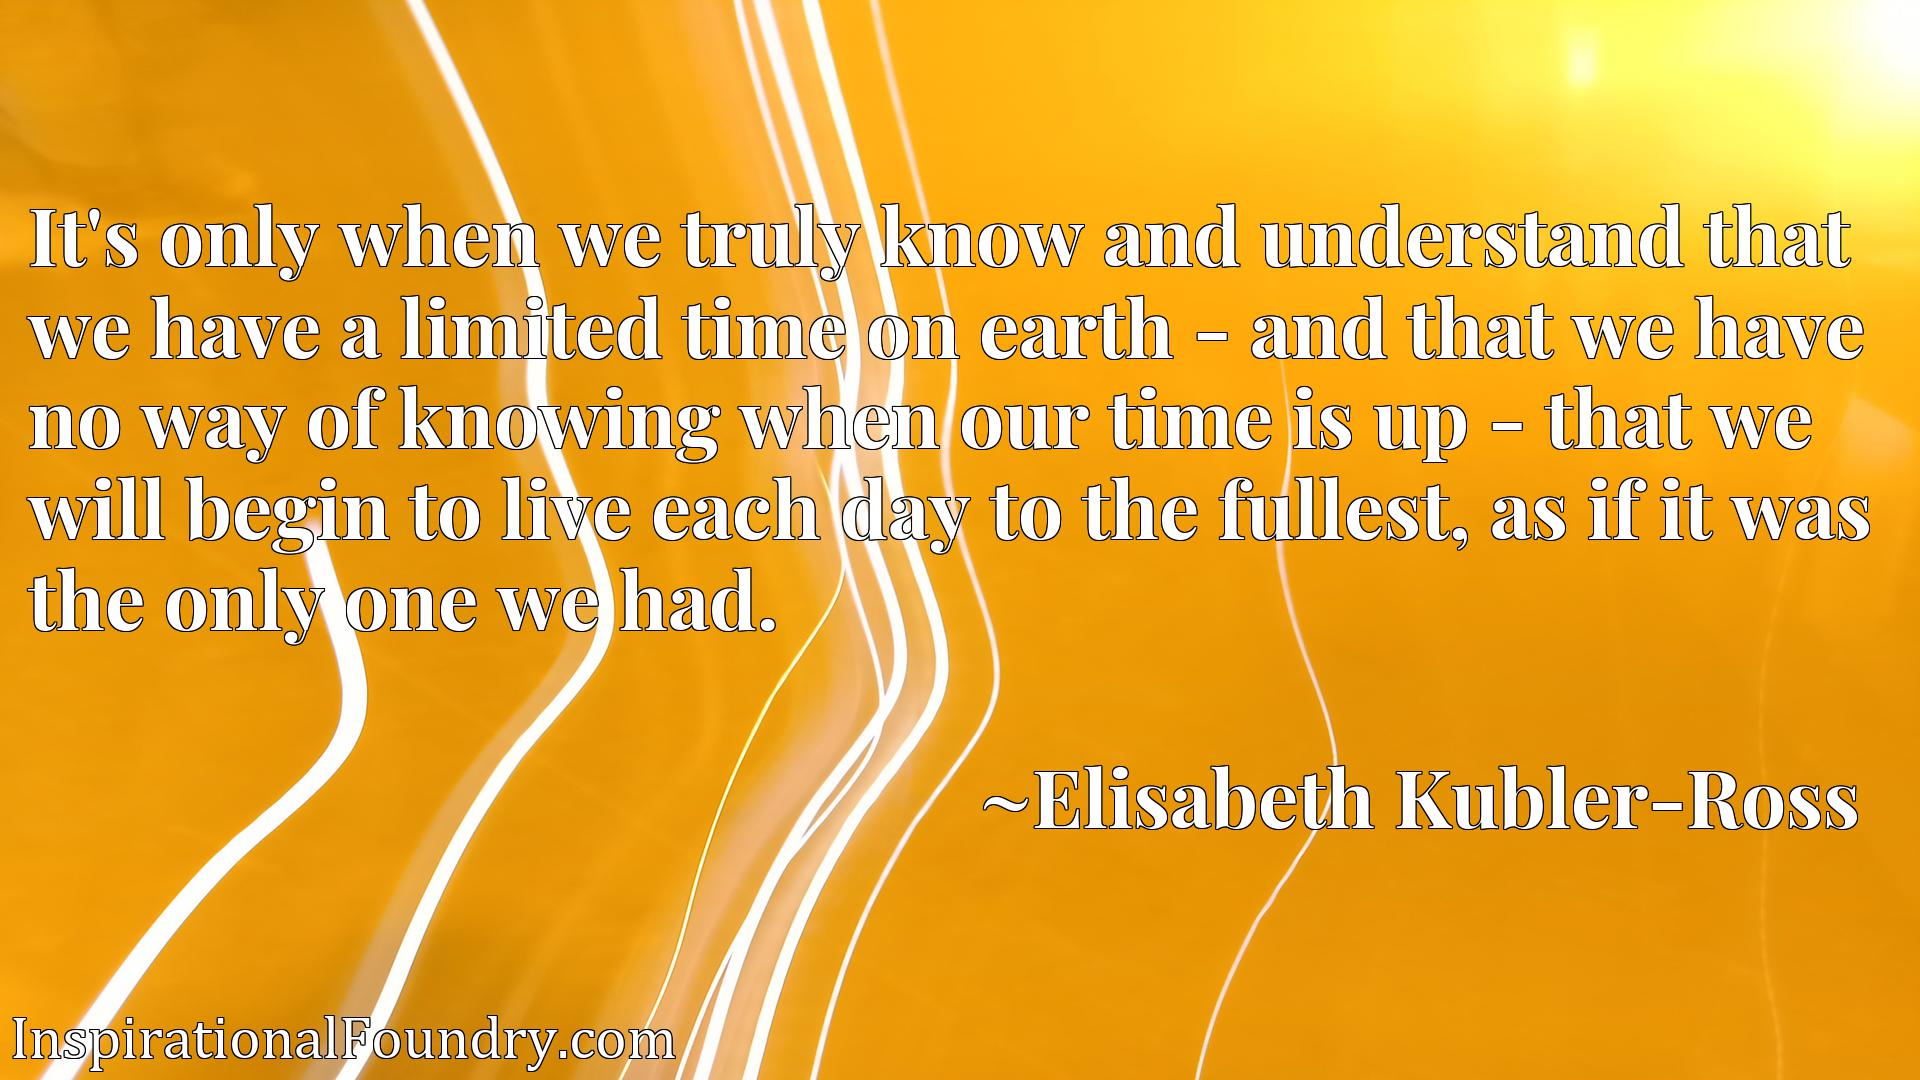 It's only when we truly know and understand that we have a limited time on earth - and that we have no way of knowing when our time is up - that we will begin to live each day to the fullest, as if it was the only one we had.